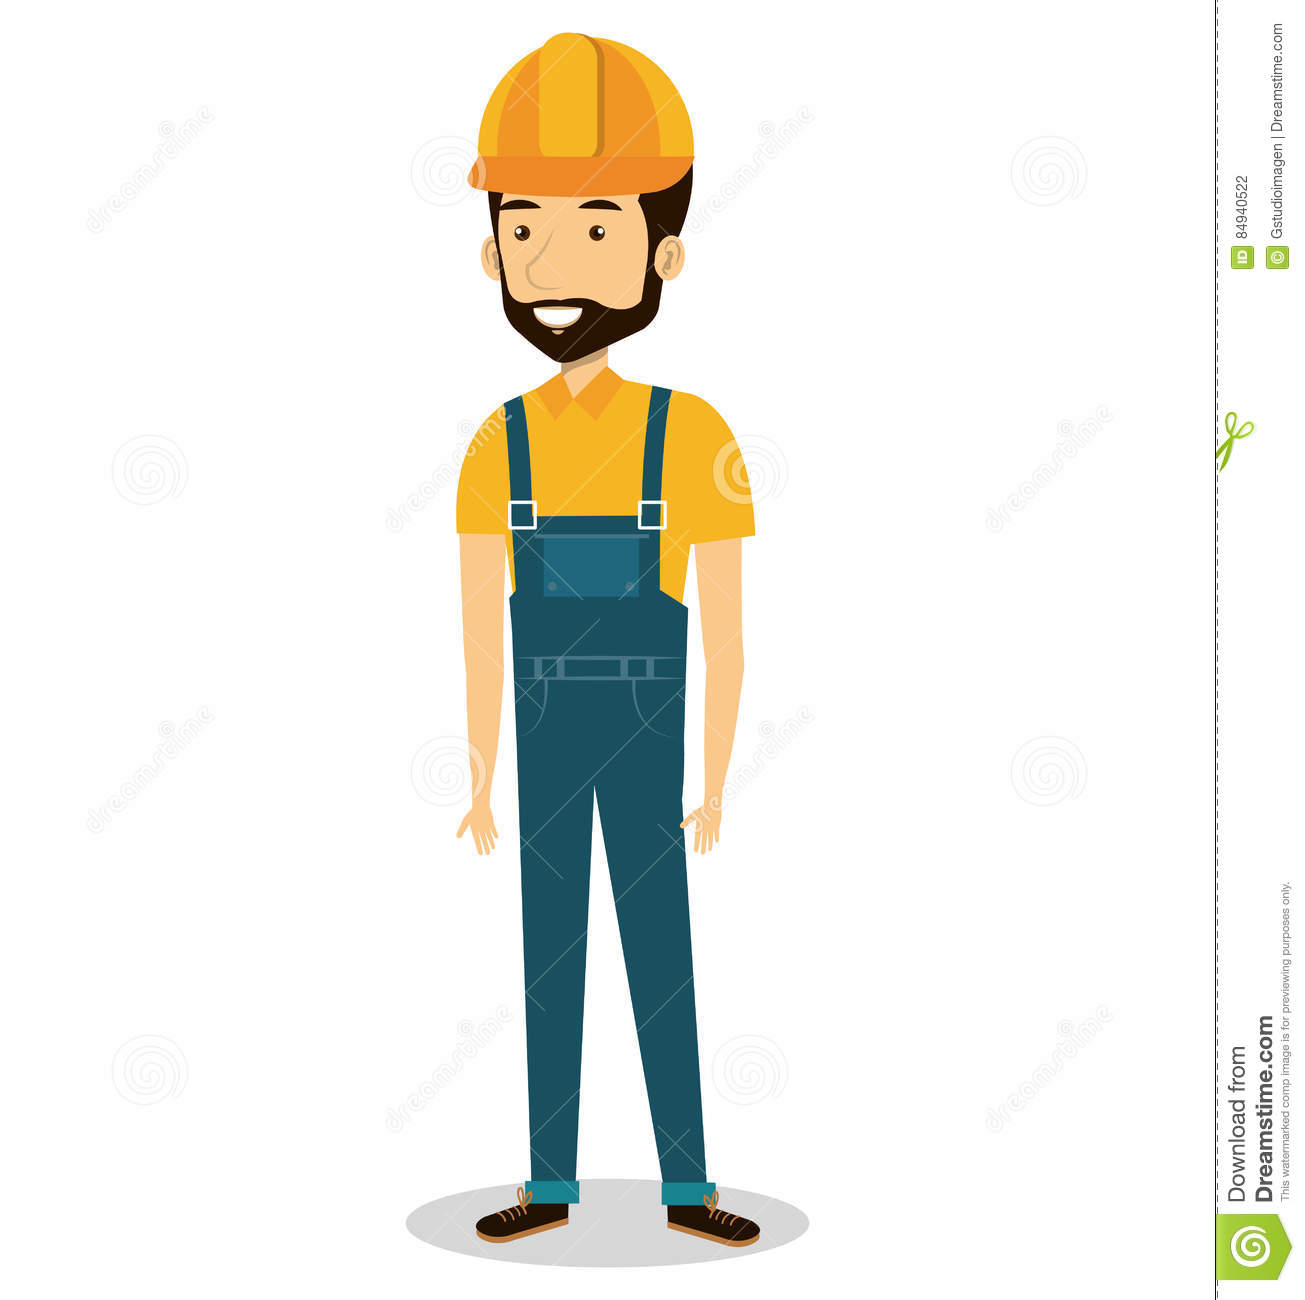 Character Design Job Requirements : Male builder avatar character stock illustration